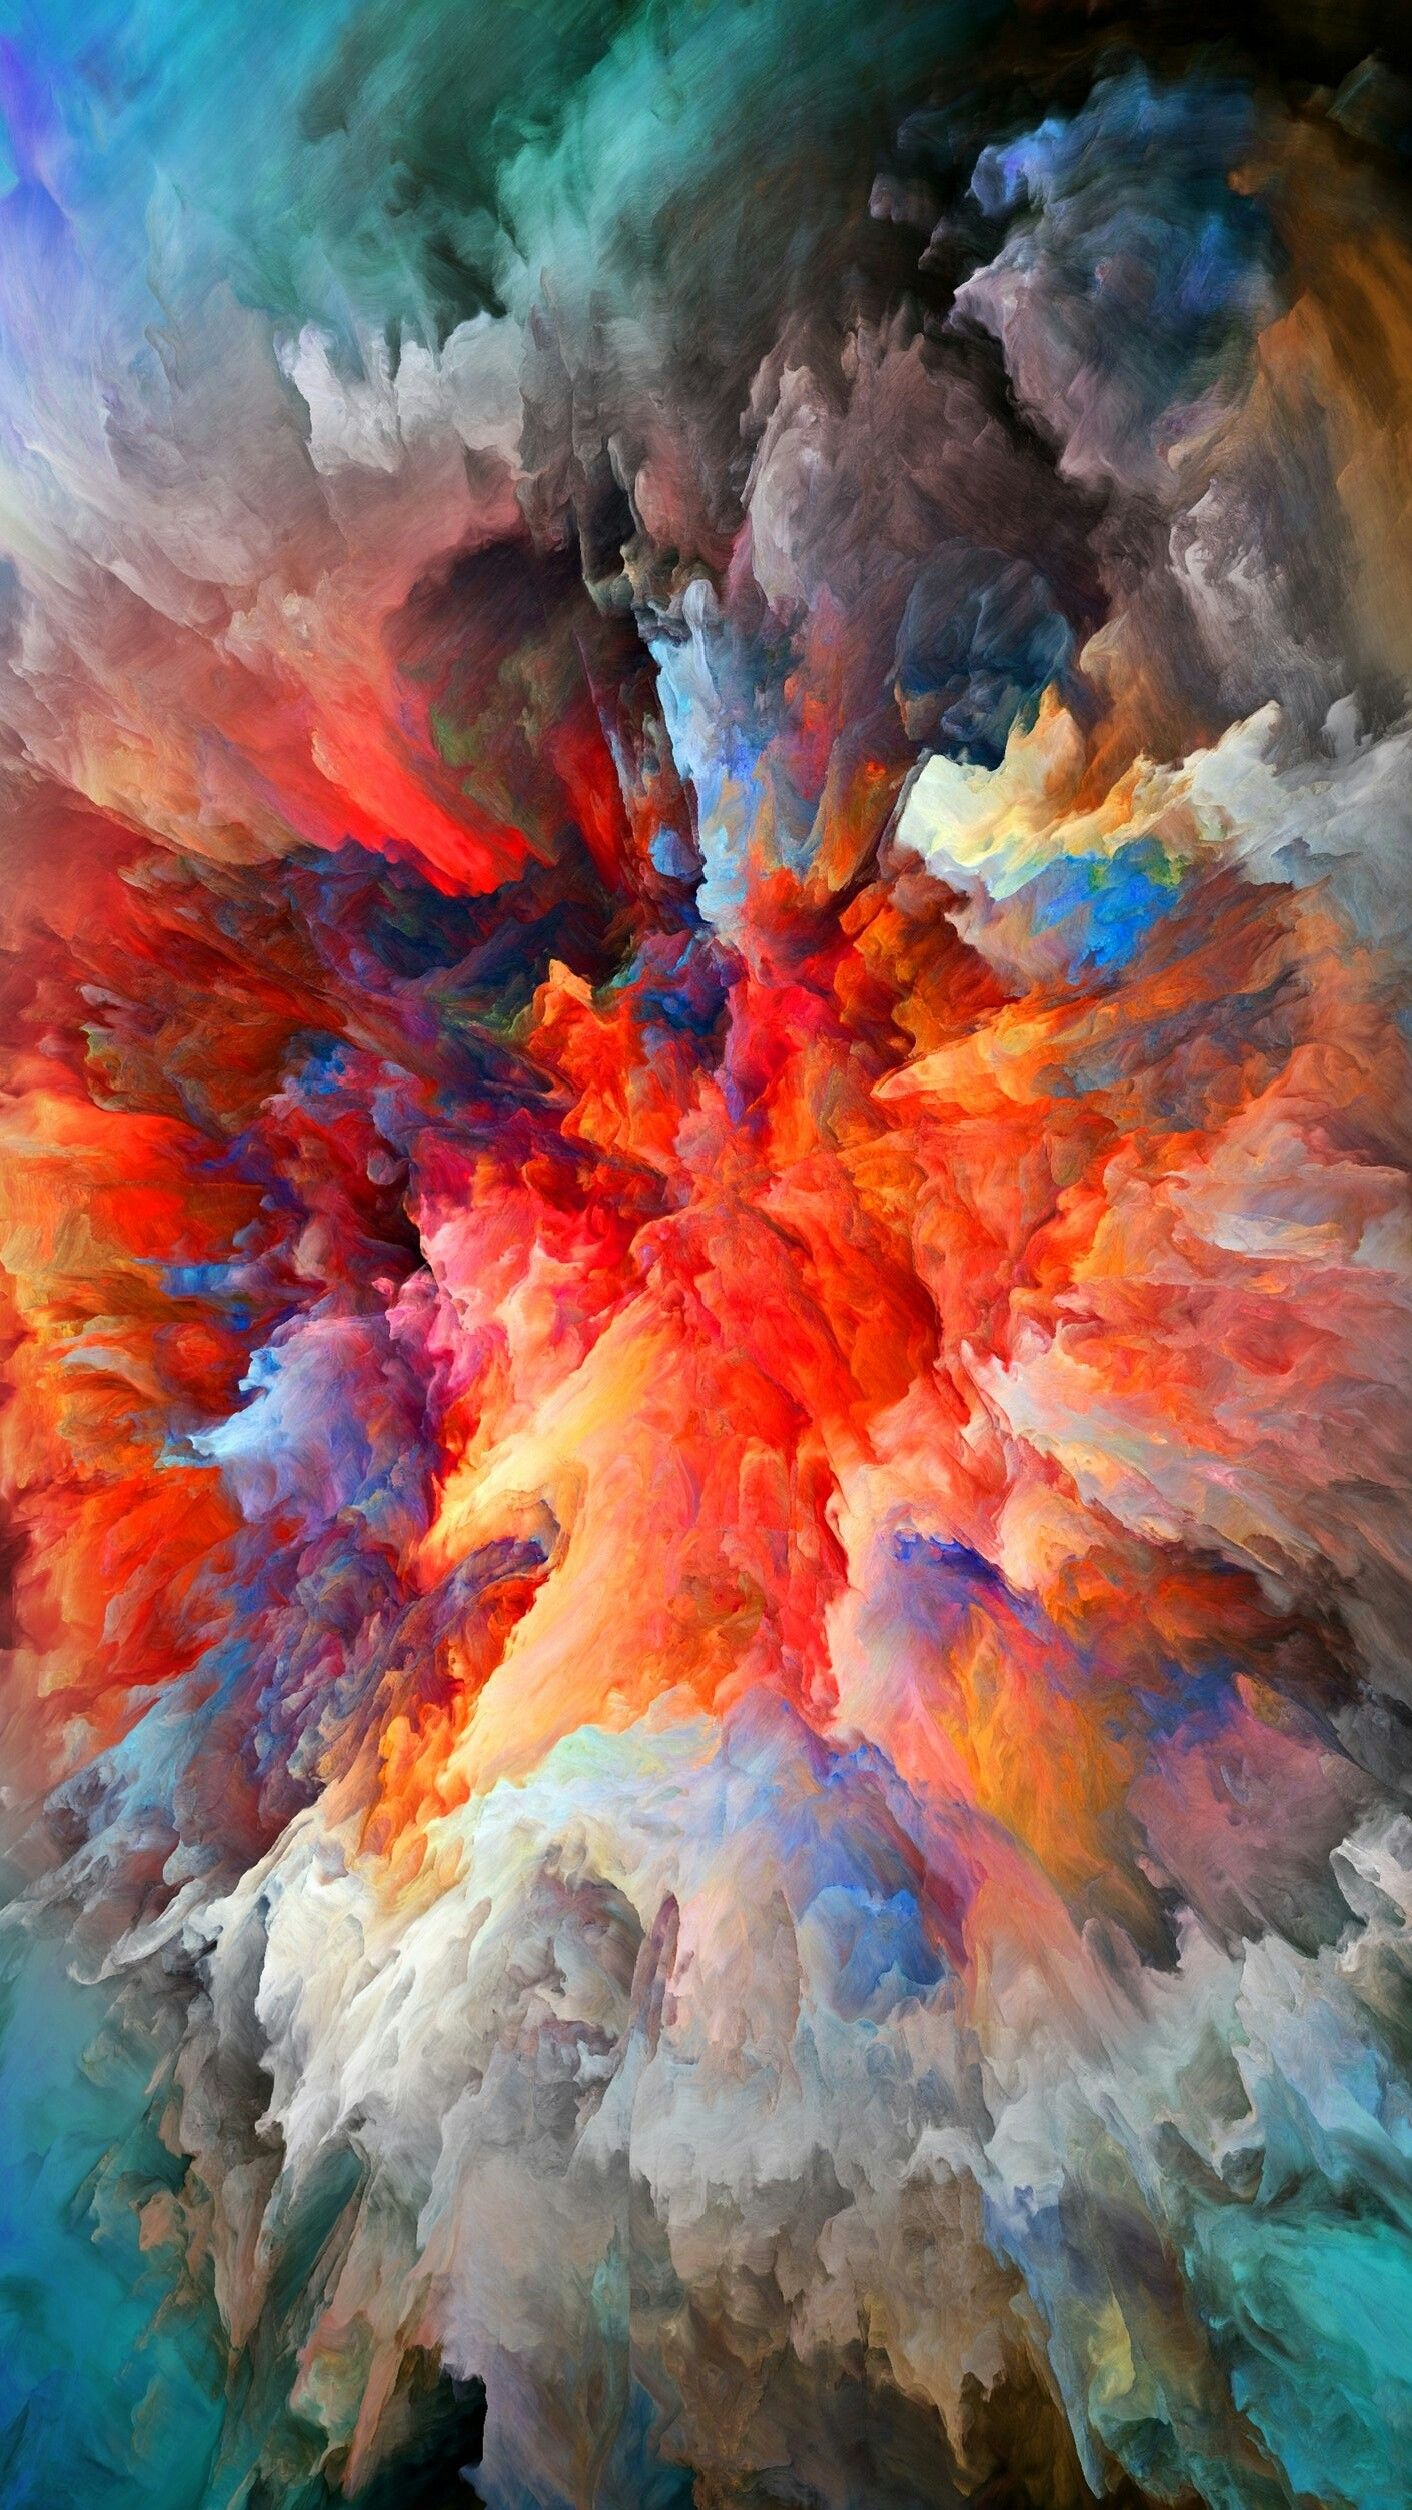 colorful smoke explosion | Wallpapers